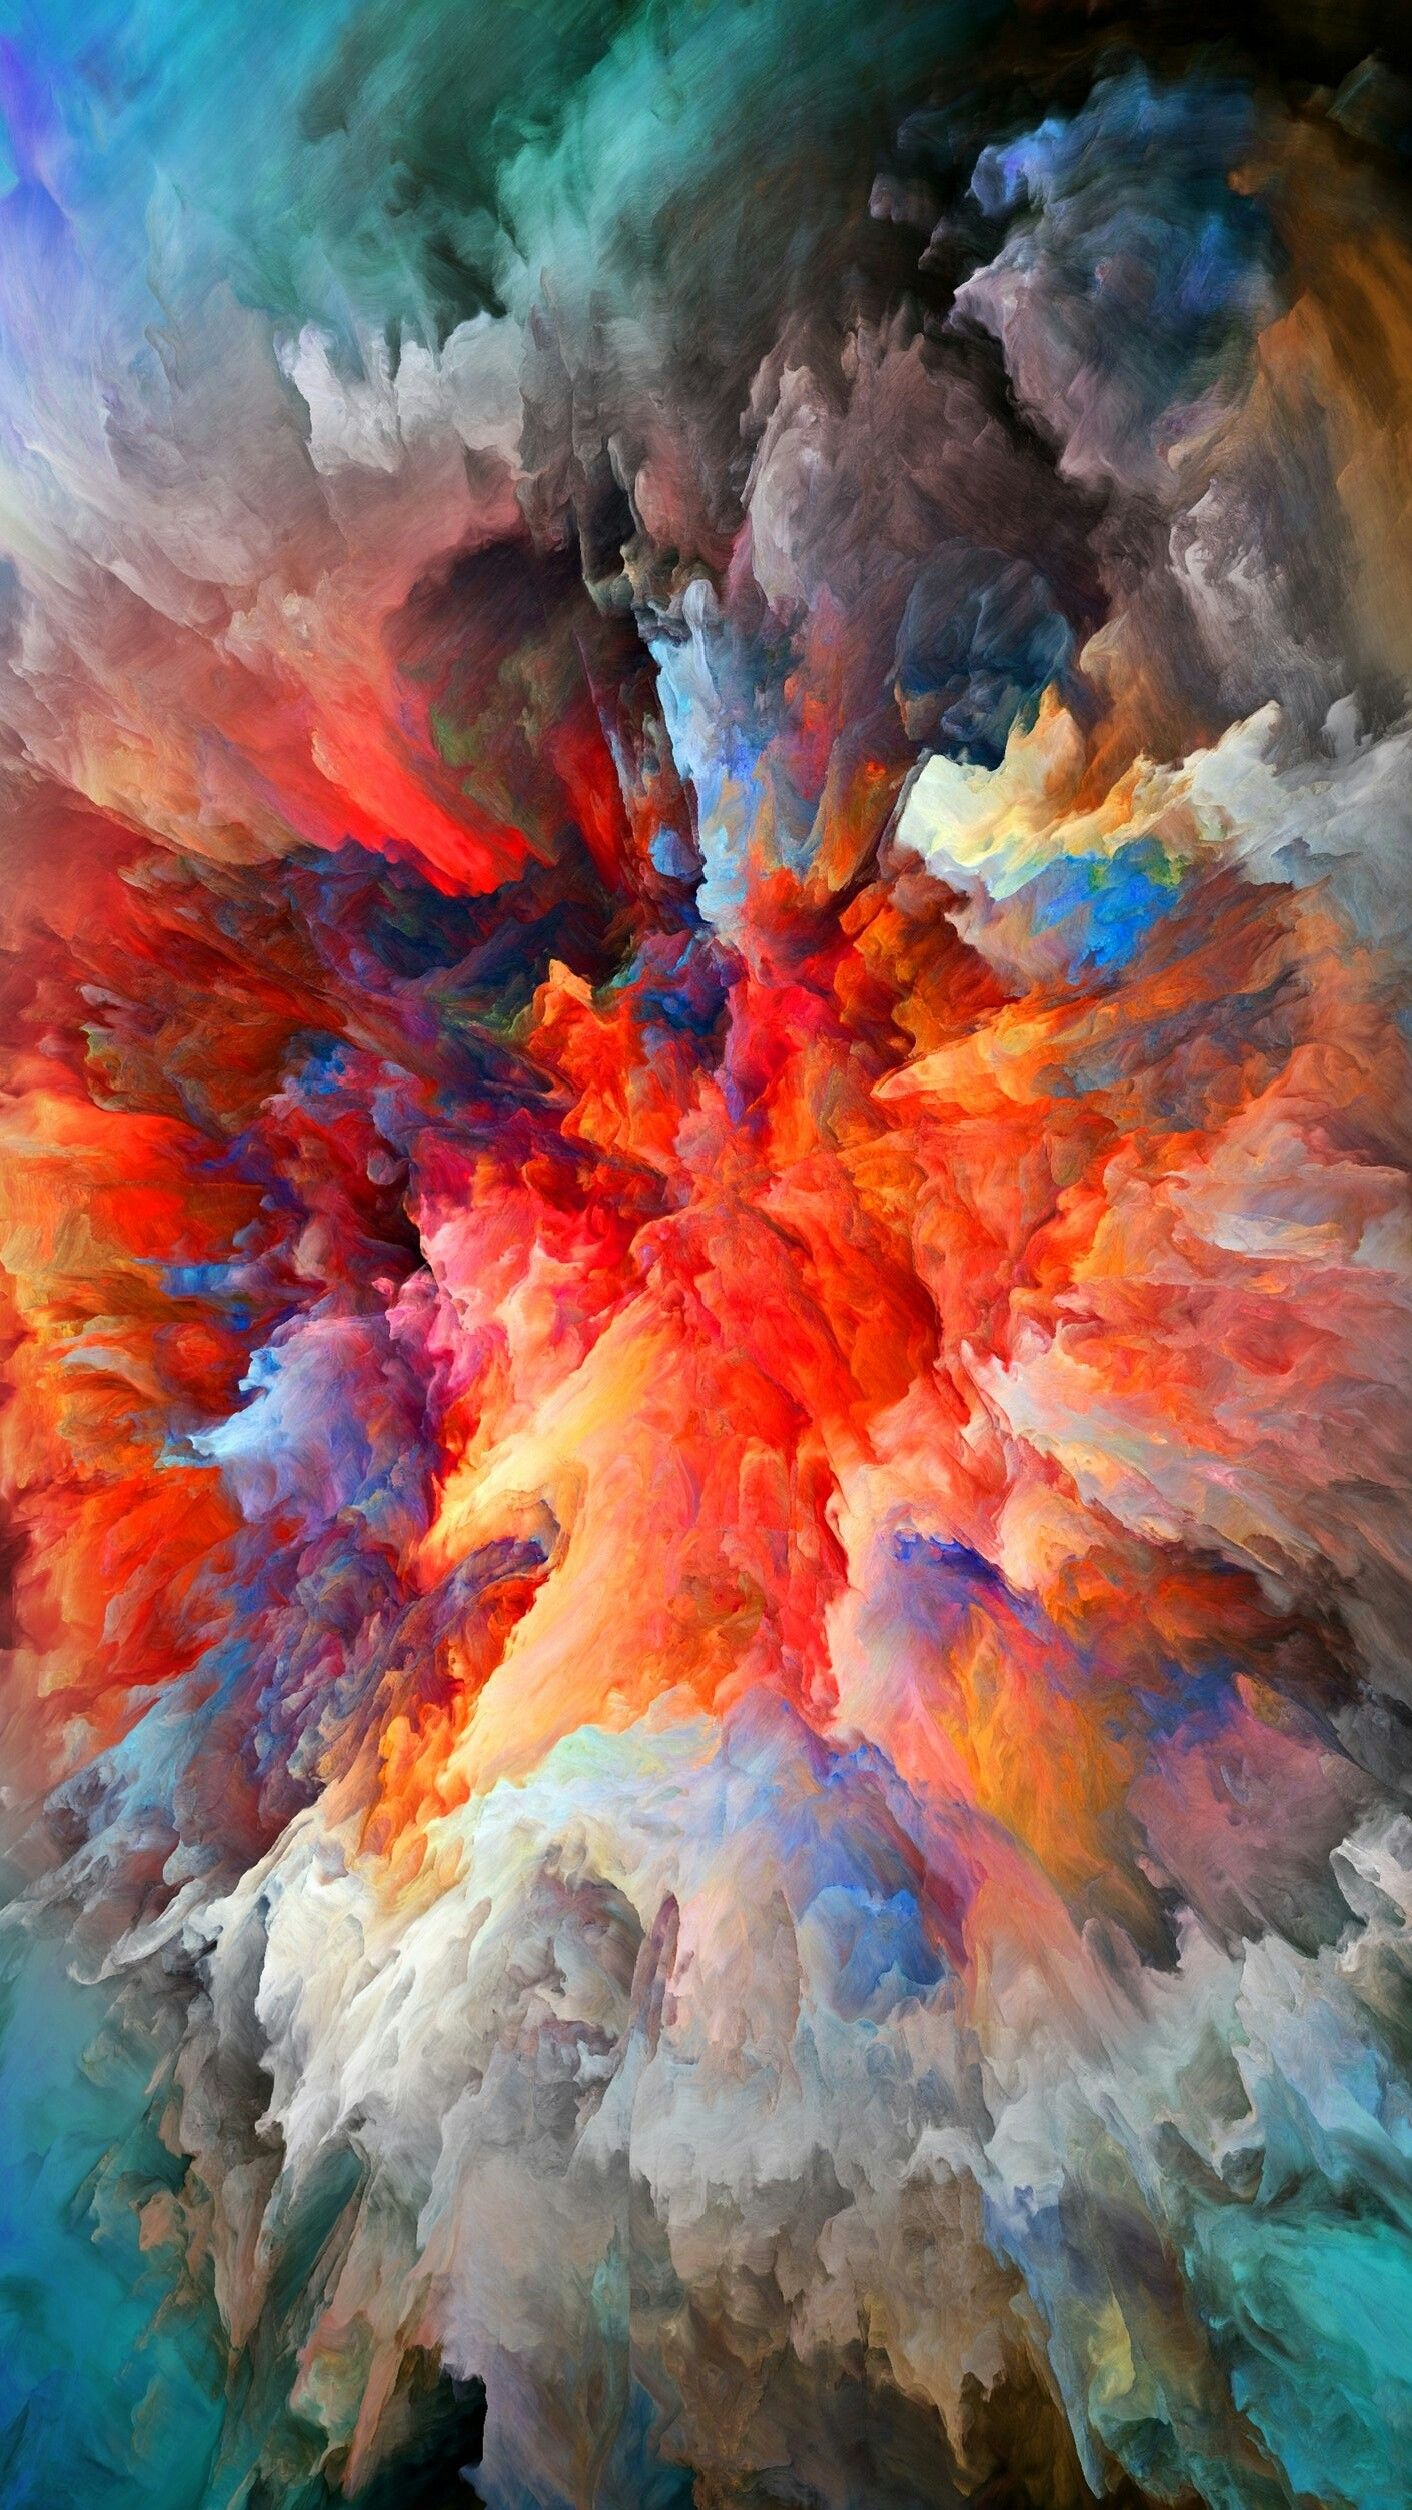 colorful smoke explosion | Wallpapers